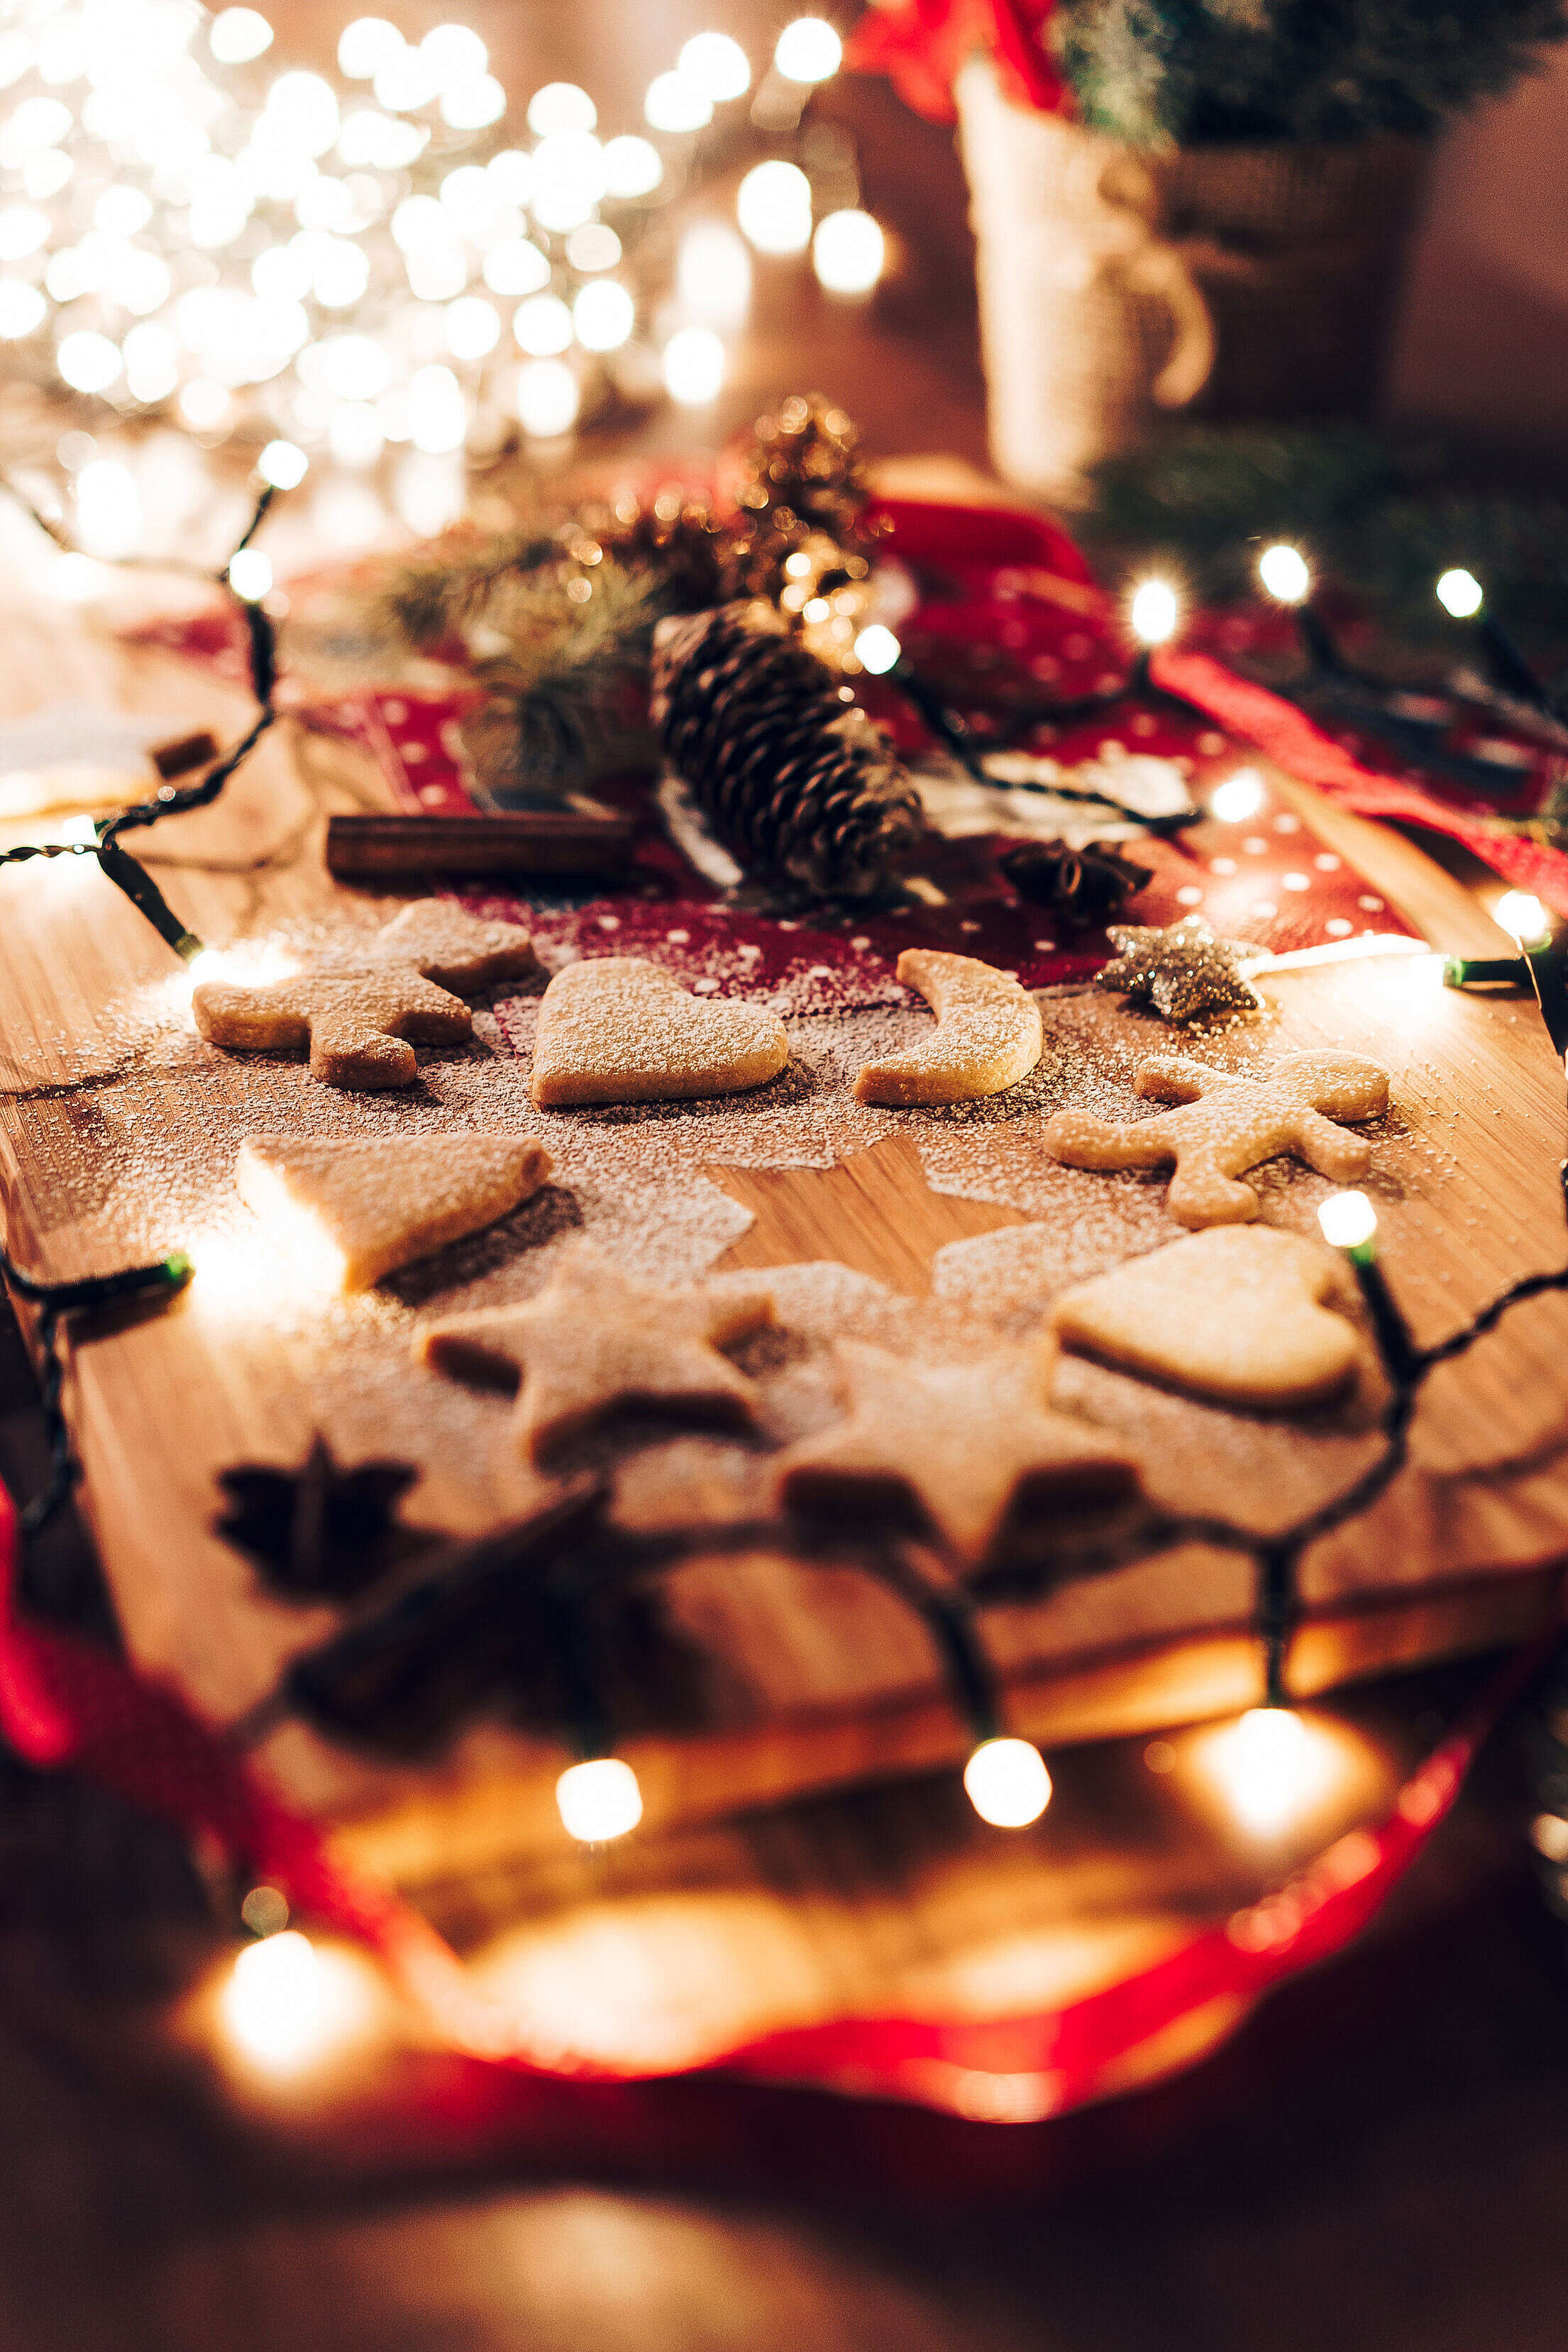 Gingerbread Biscuits on Christmas Evening Free Stock Photo